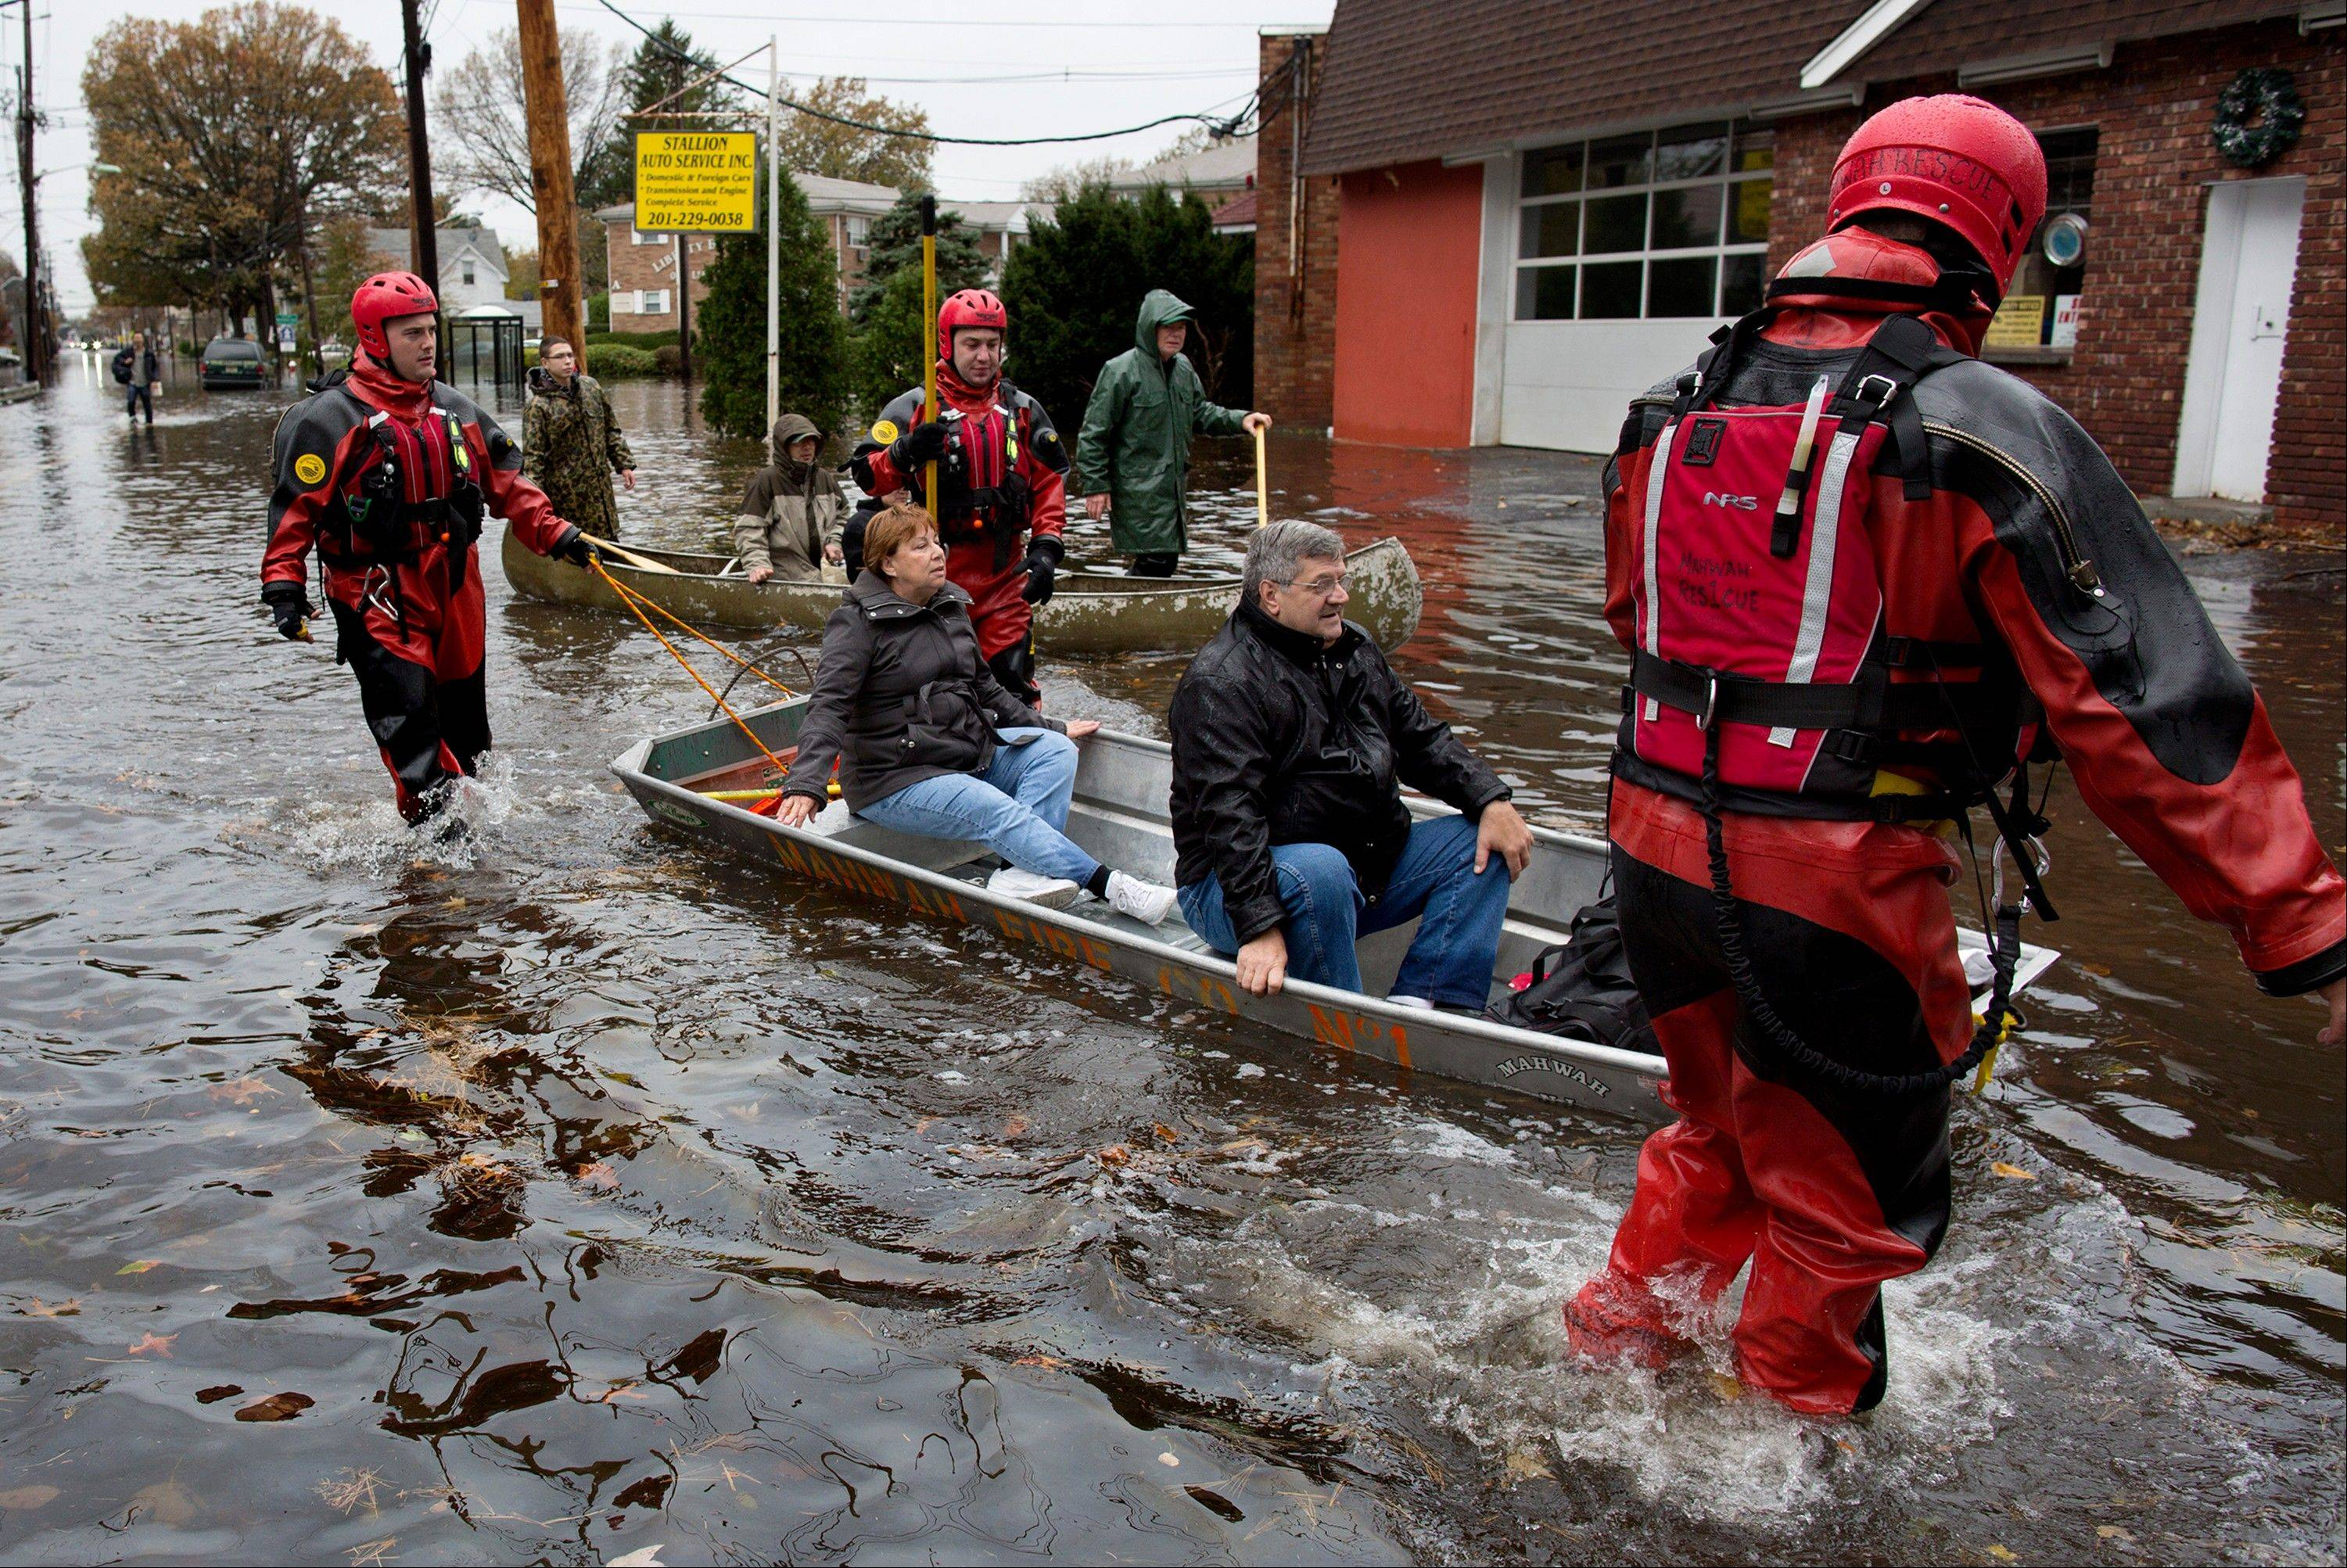 Rescuers bring people out by boat in the wake of superstorm Sandy in Little Ferry, N.J., on Oct. 30. Despite days of dire forecasts and explicit warnings, hundreds of thousands of people in New York and New Jersey ignored mandatory evacuation orders as Superstorm Sandy closed in.